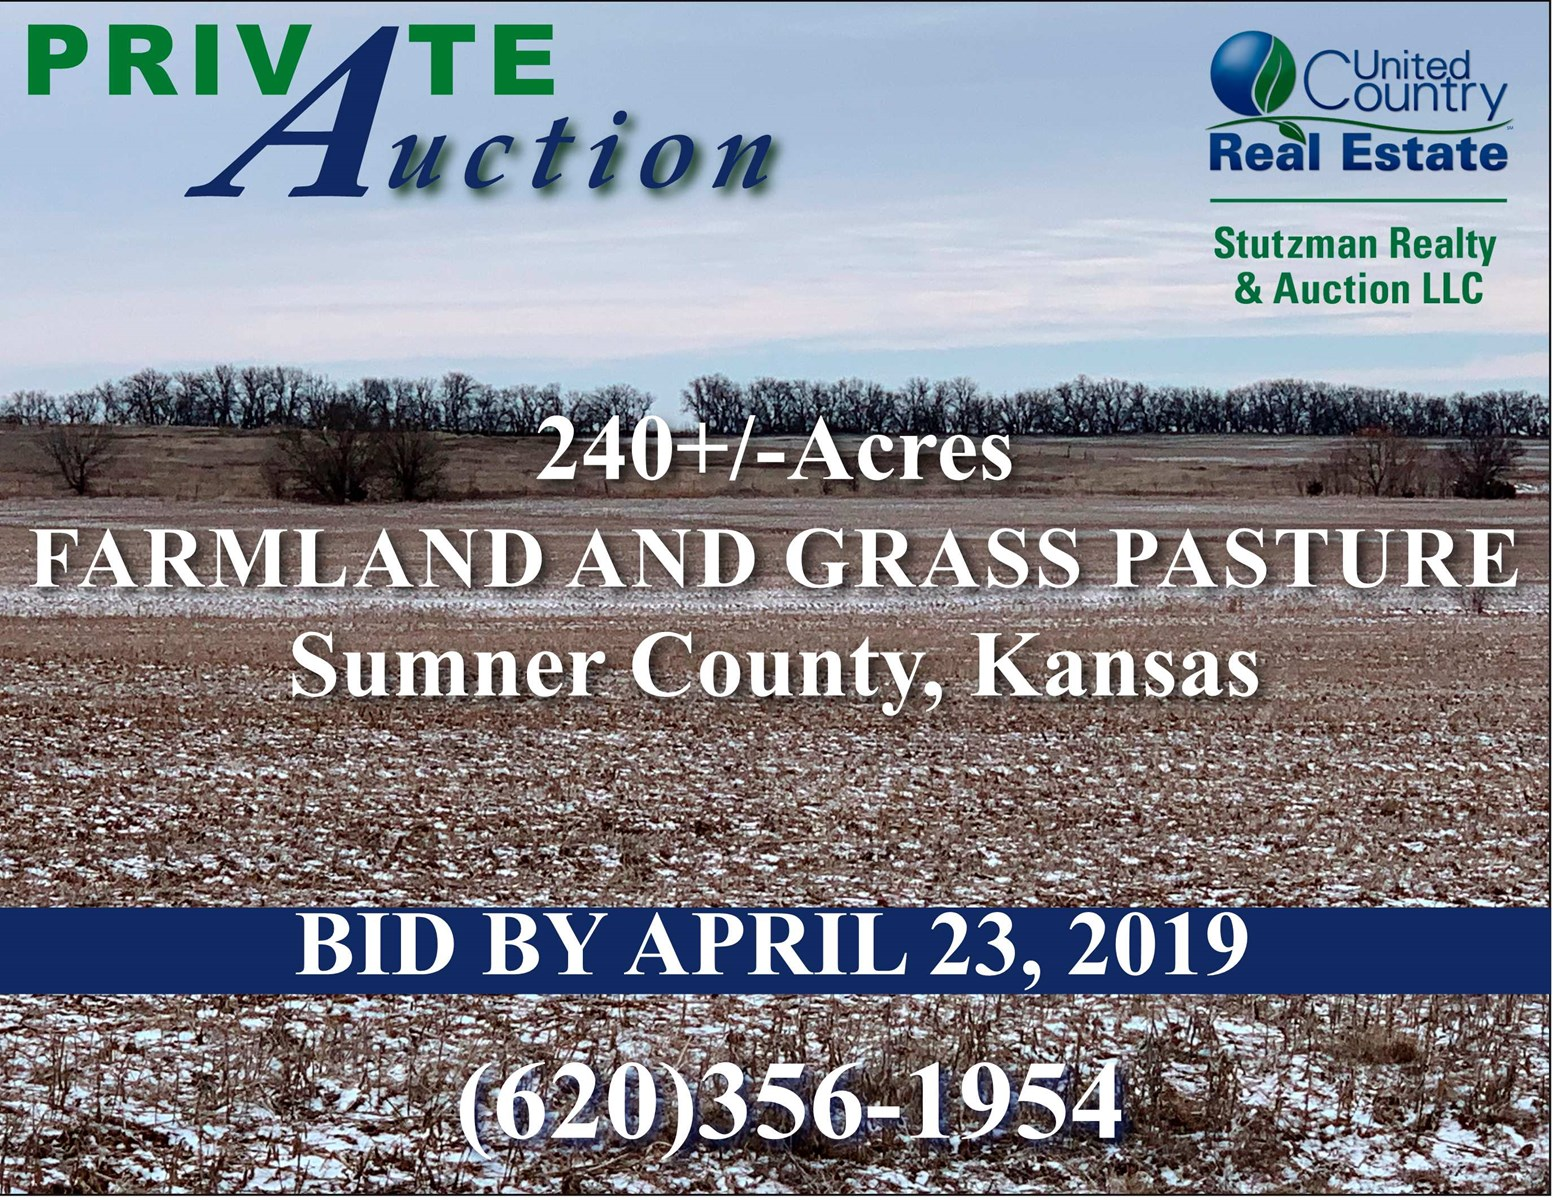 SUMNER COUNTY KS - PRIVATE AUCTION - 240+/- ACRES